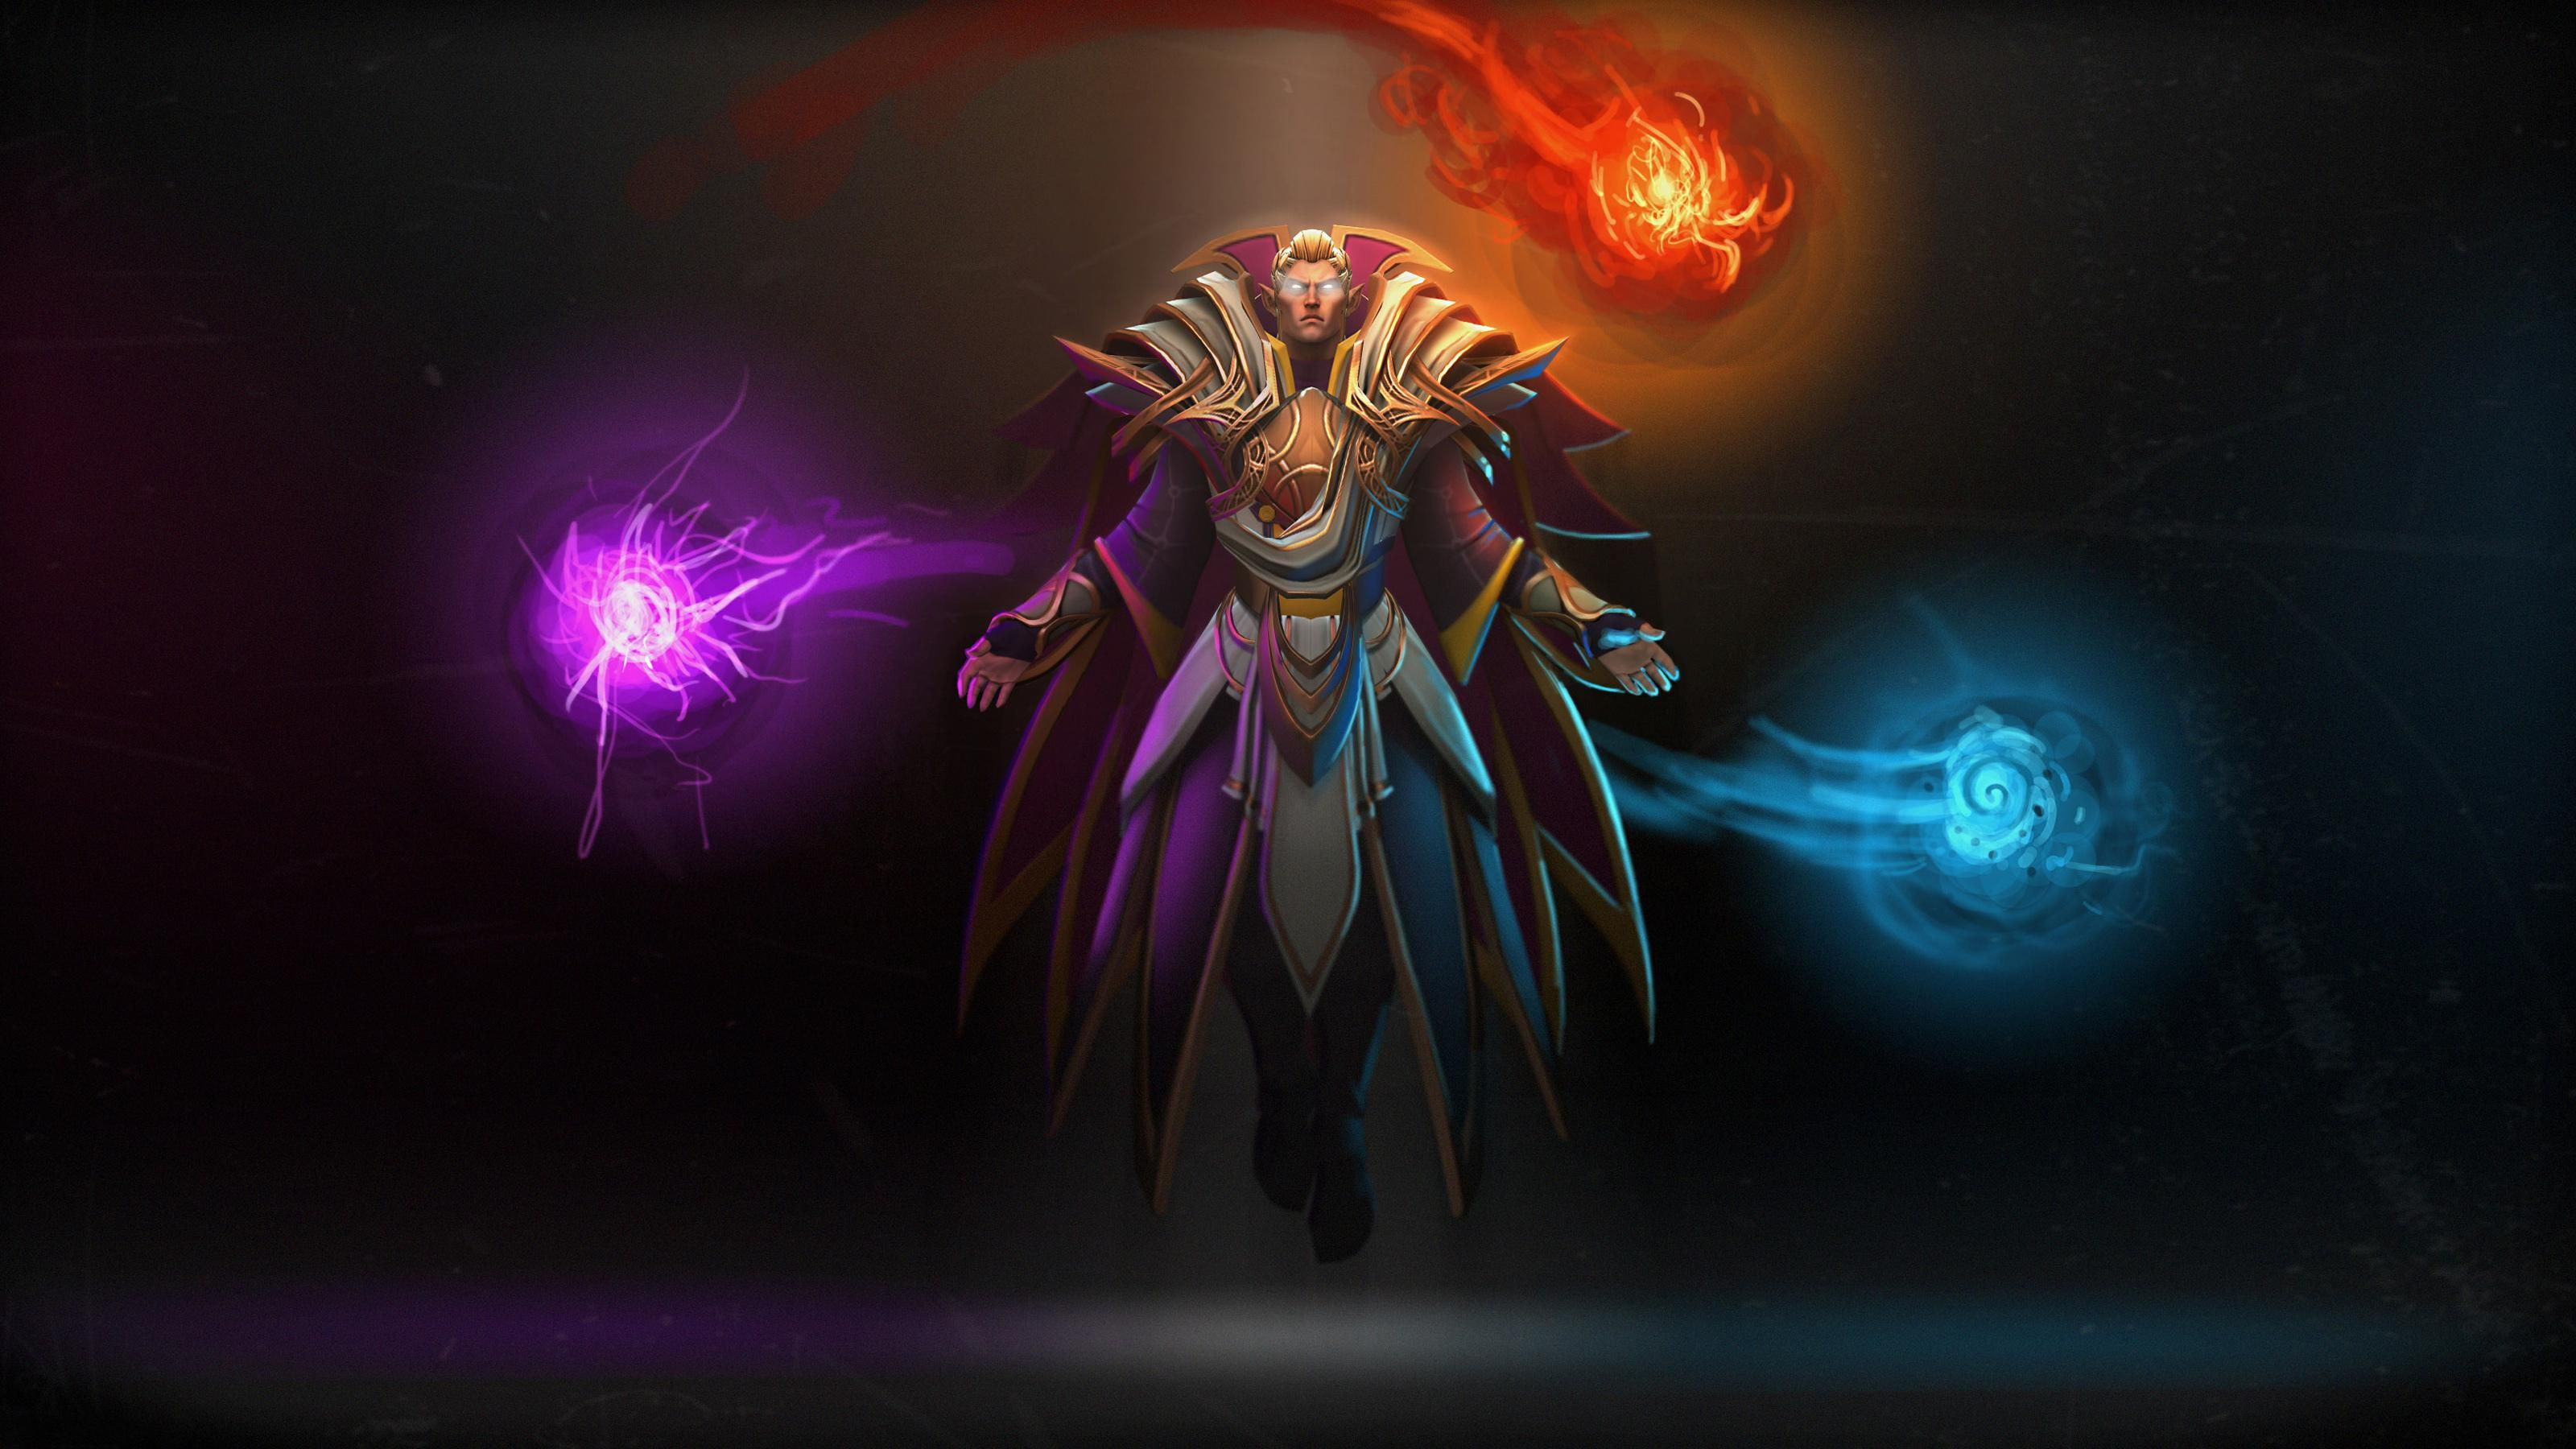 Dota 2 Invoker Wallpaper Desktop Background ...